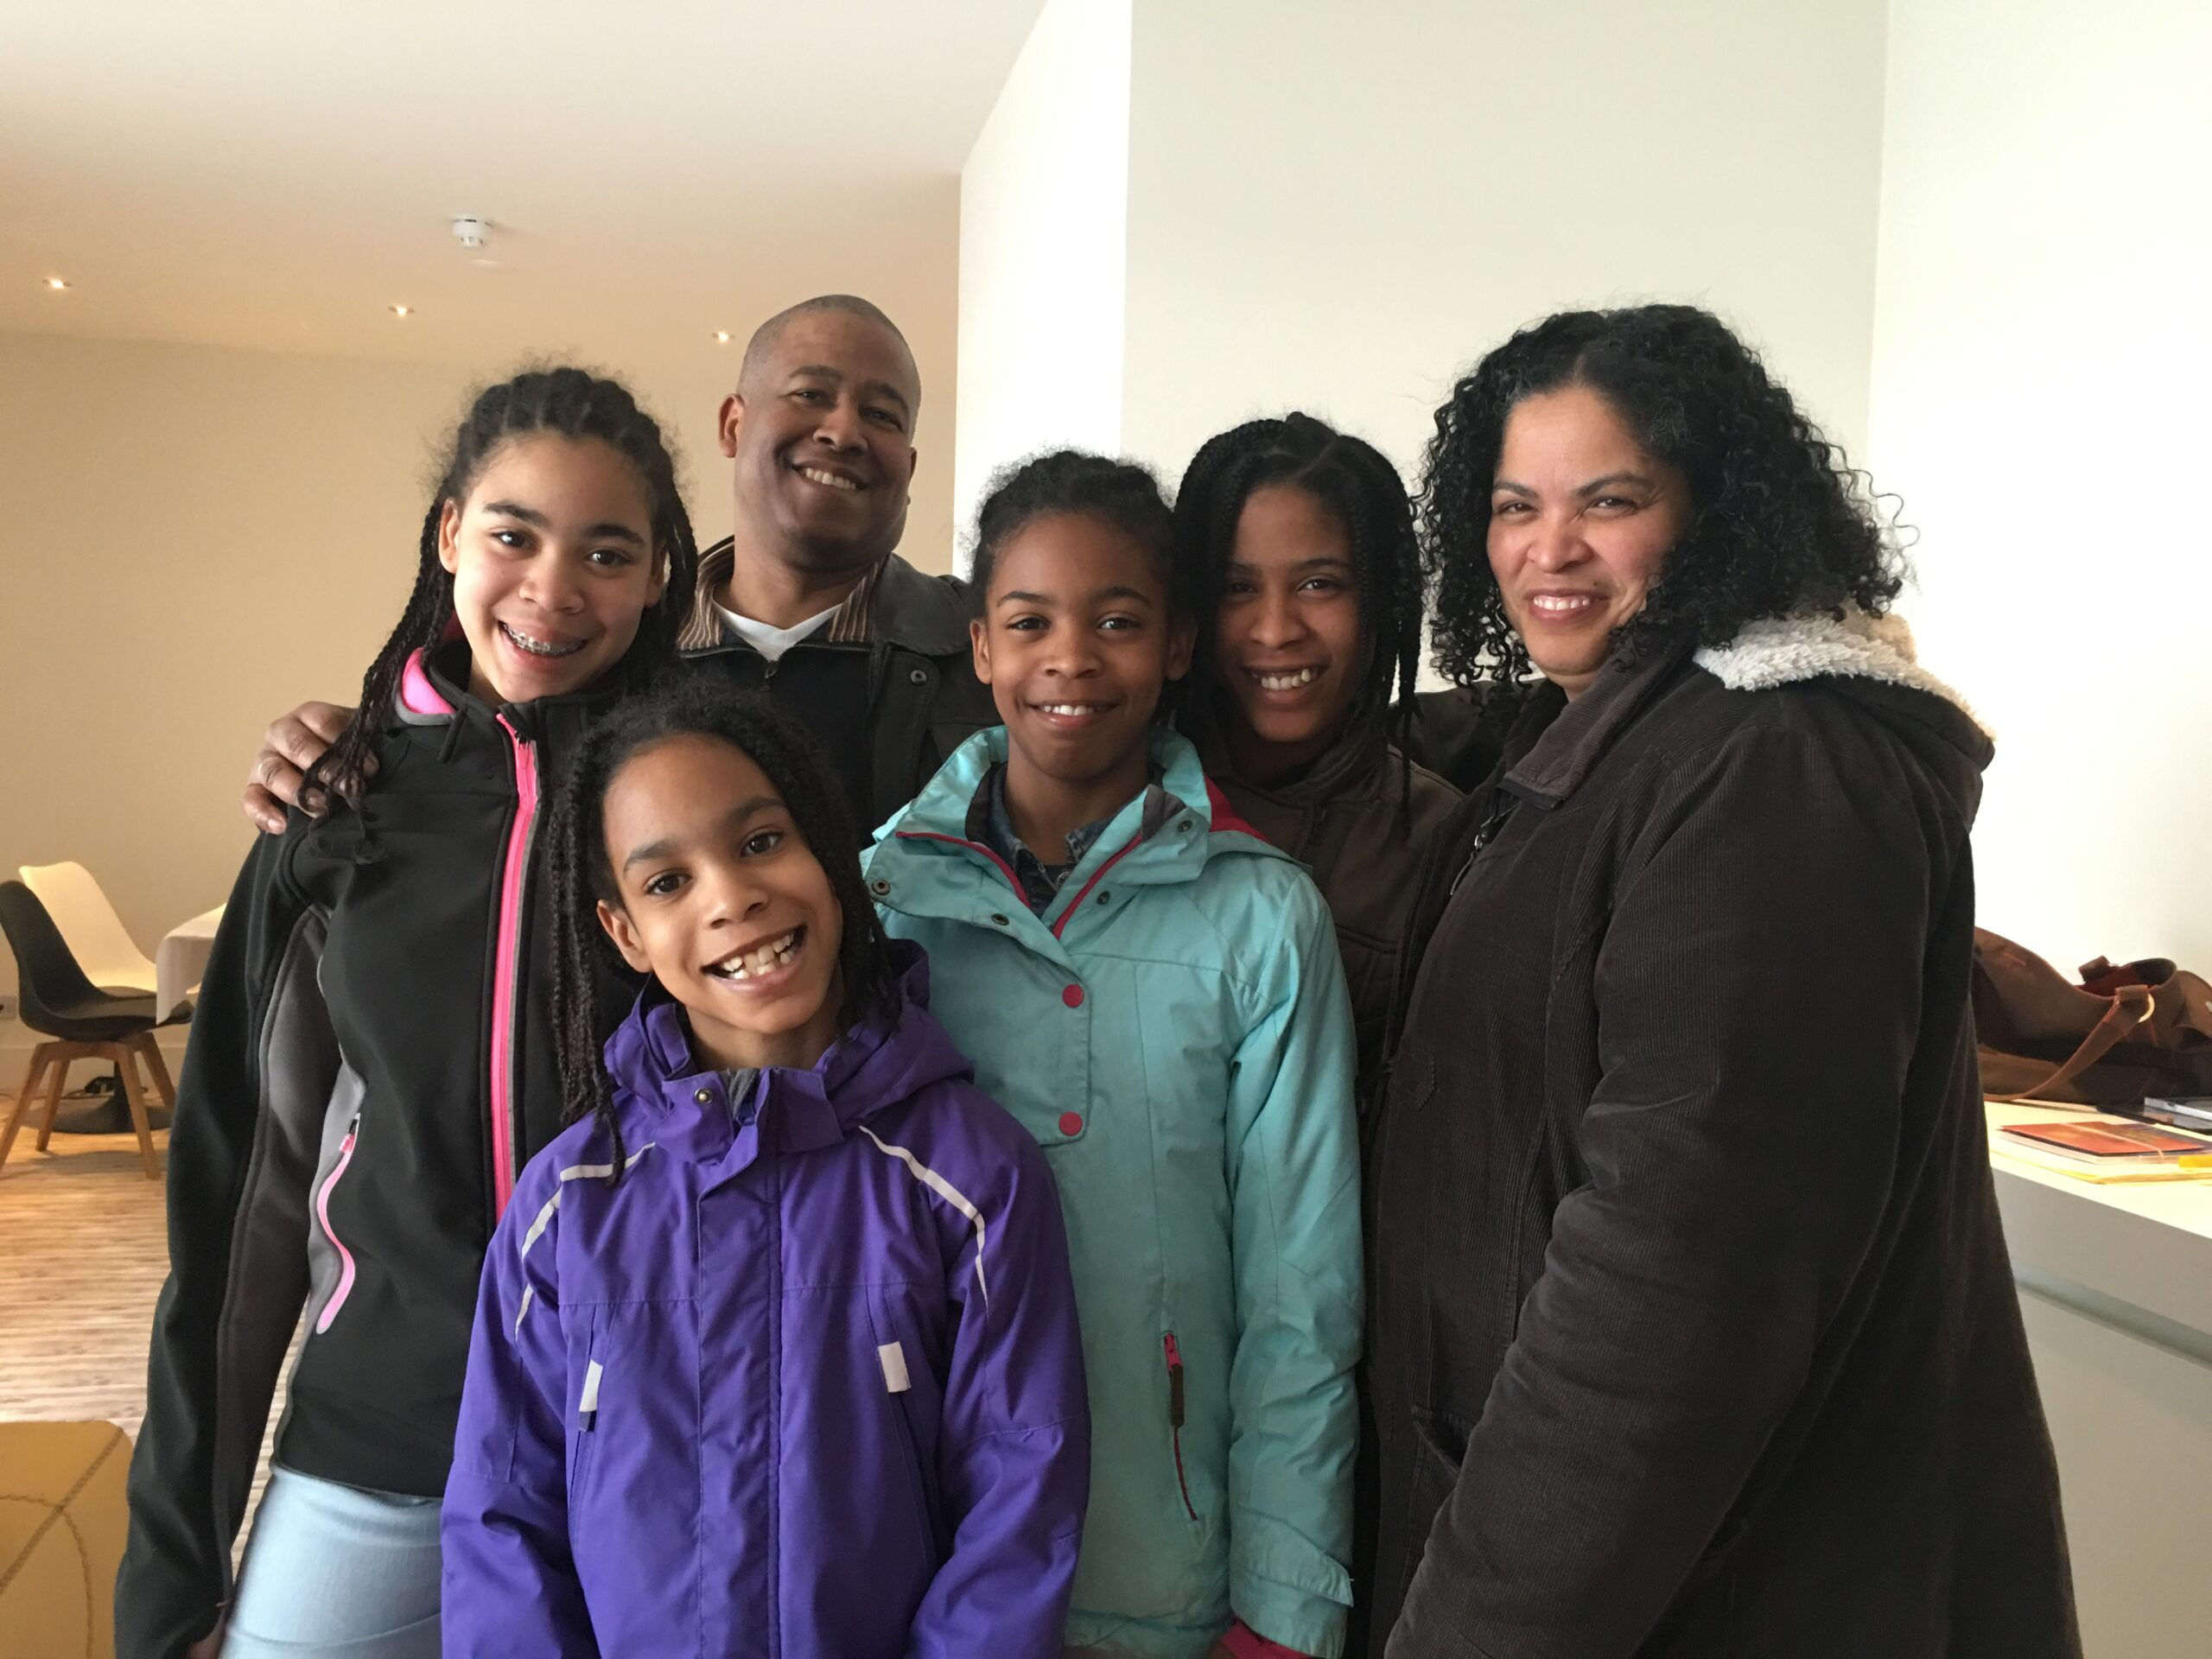 Our close friends, Rev. Remsley Riley, Shahidra, and children